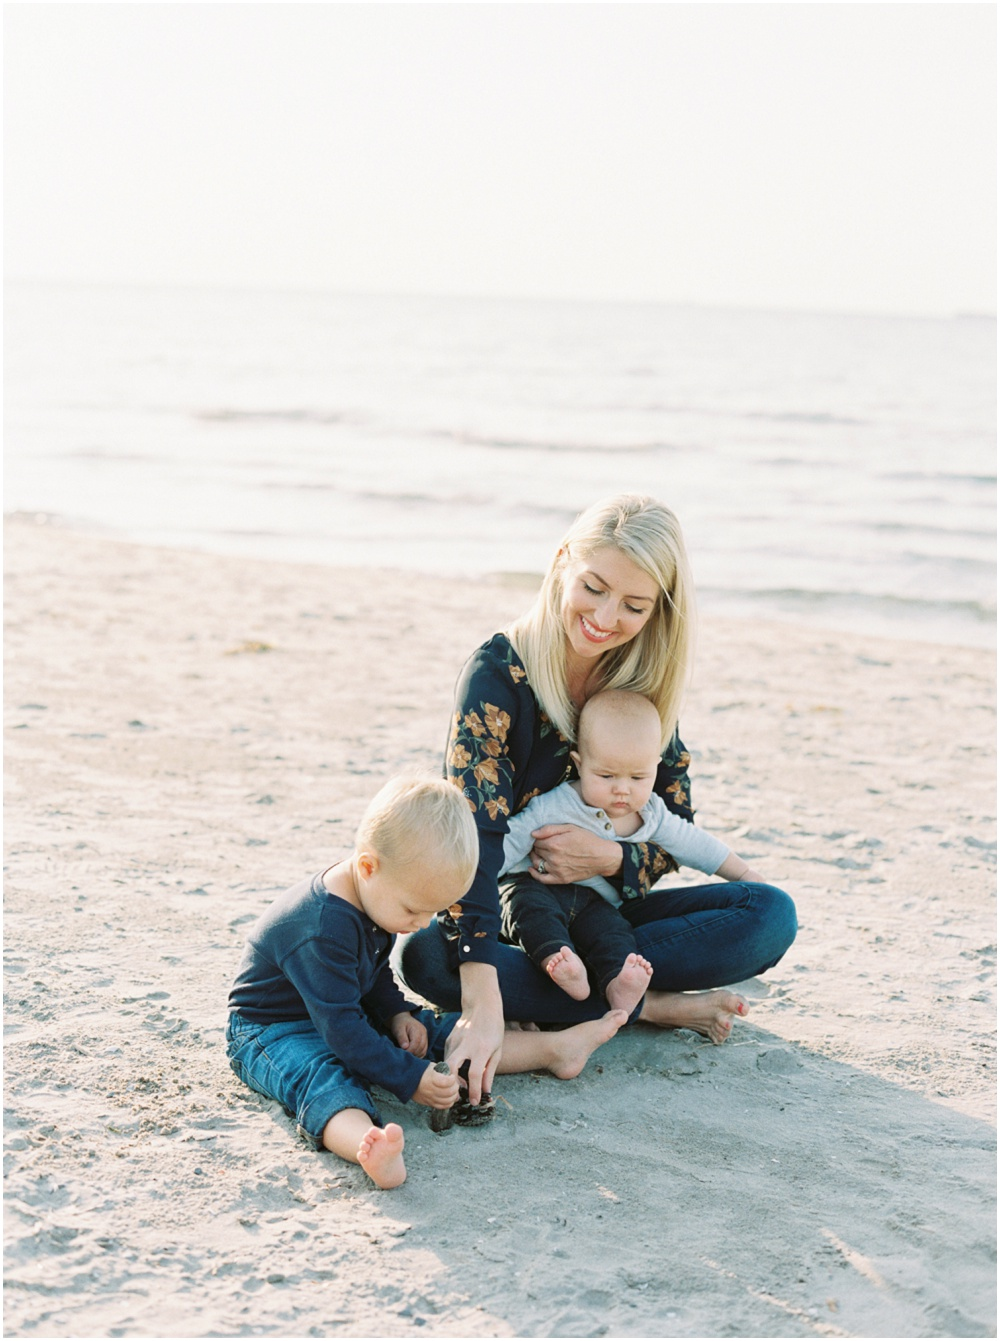 Motherhood Photography by Andrew Mark and featured on The Fount Collective, a lifestyle publication and community devoted to the art of being a mother._0002.jpg